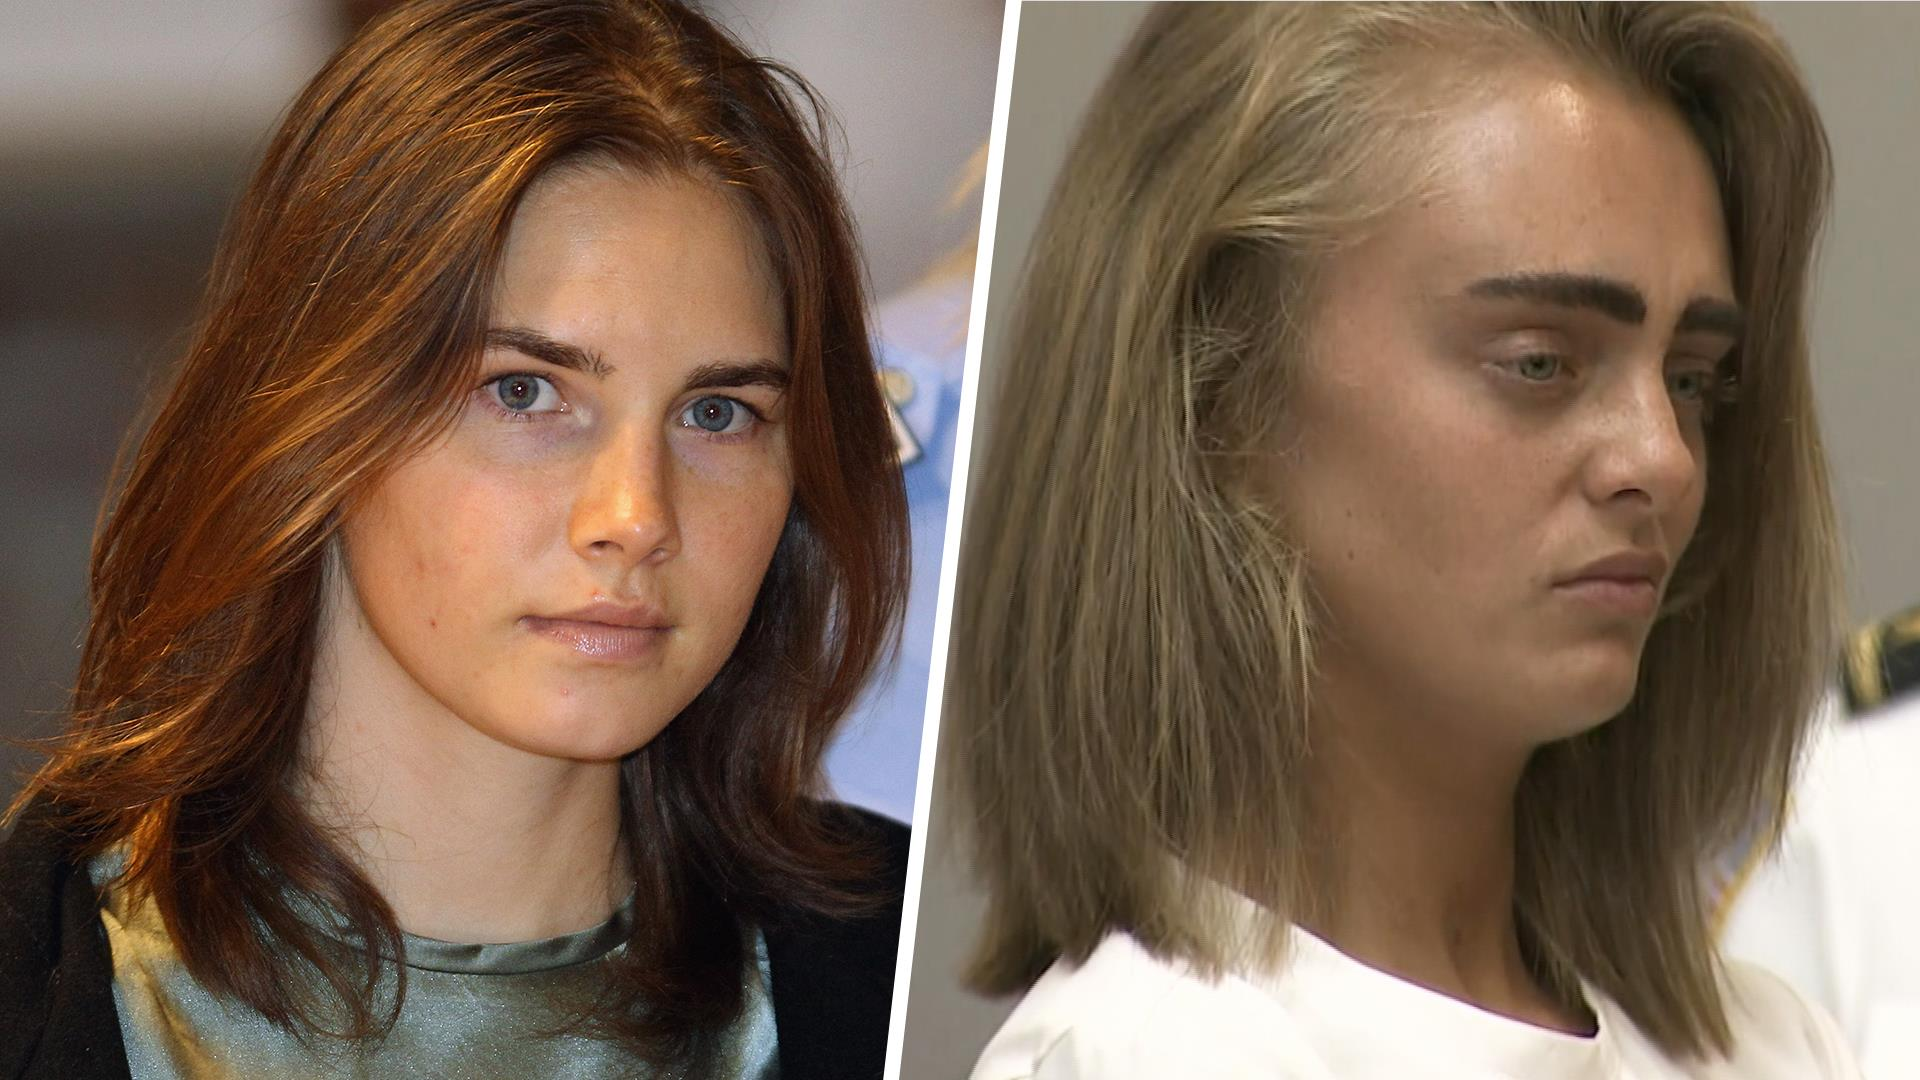 carter case Michelle carter was convicted of involuntary manslaughter for encouraging the suicide of her then-boyfriend conrad roy iii in 2014.